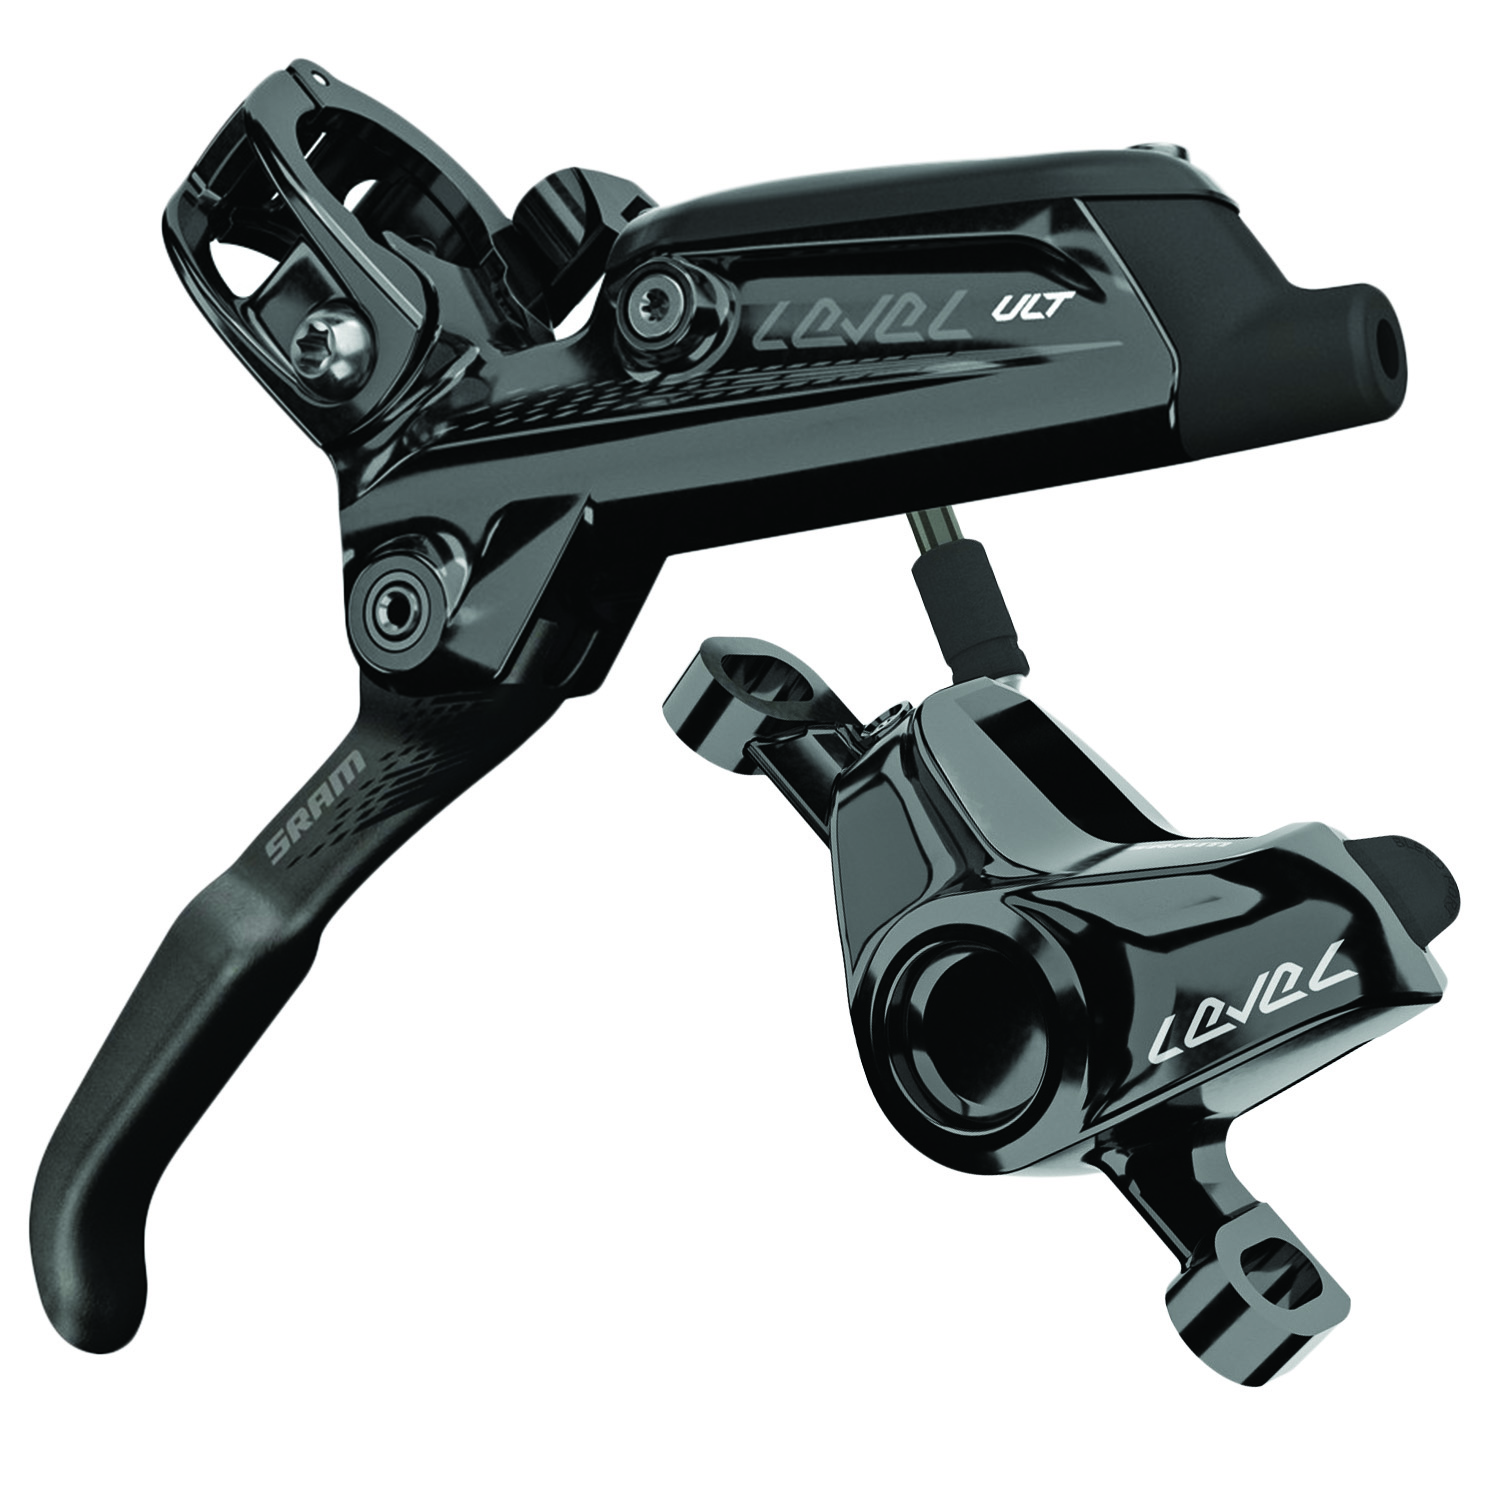 Sram Level Ultimate Disc Brakes